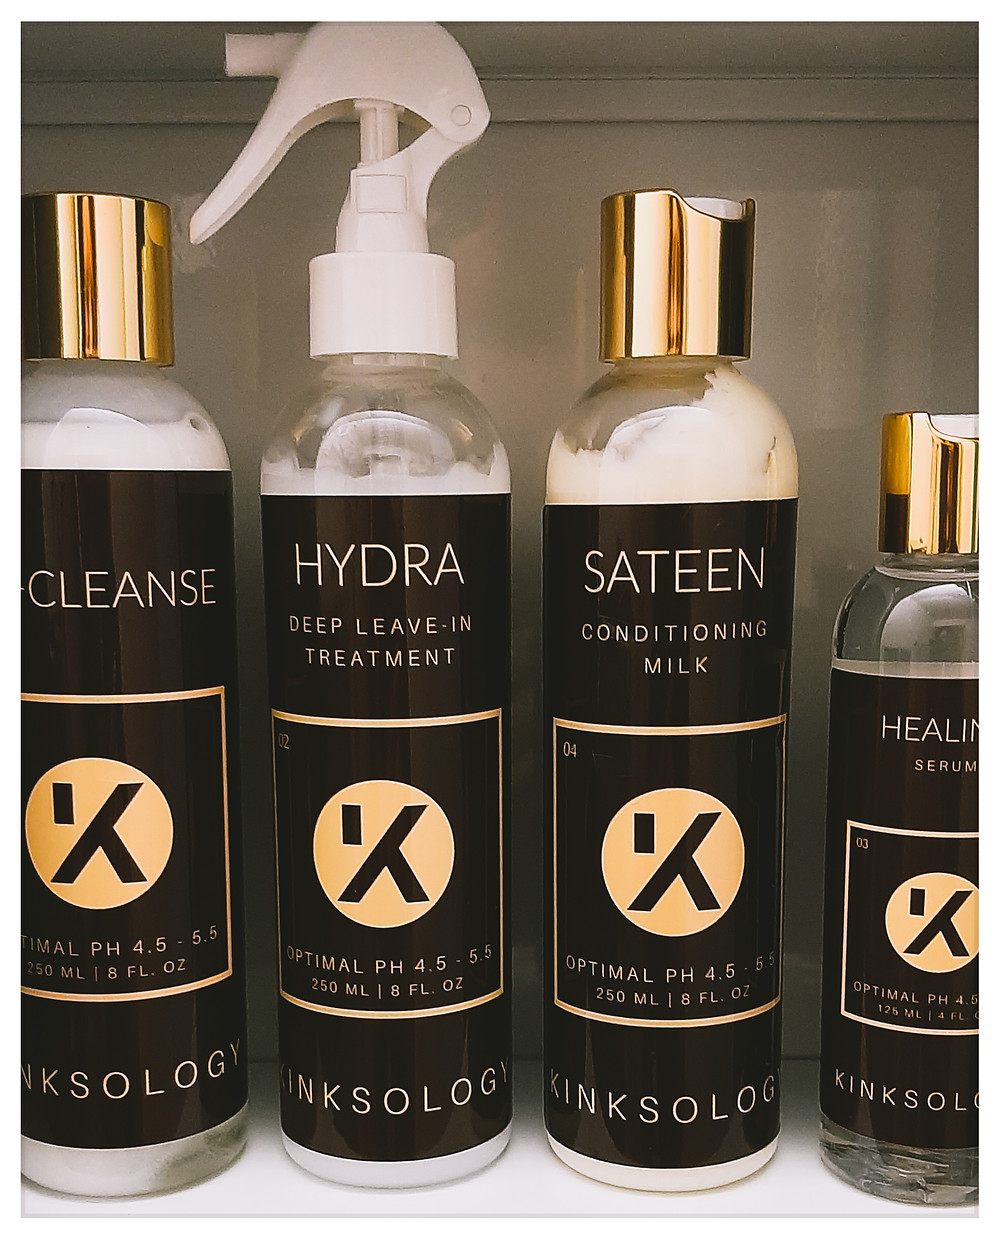 Kinksology Hair Care System